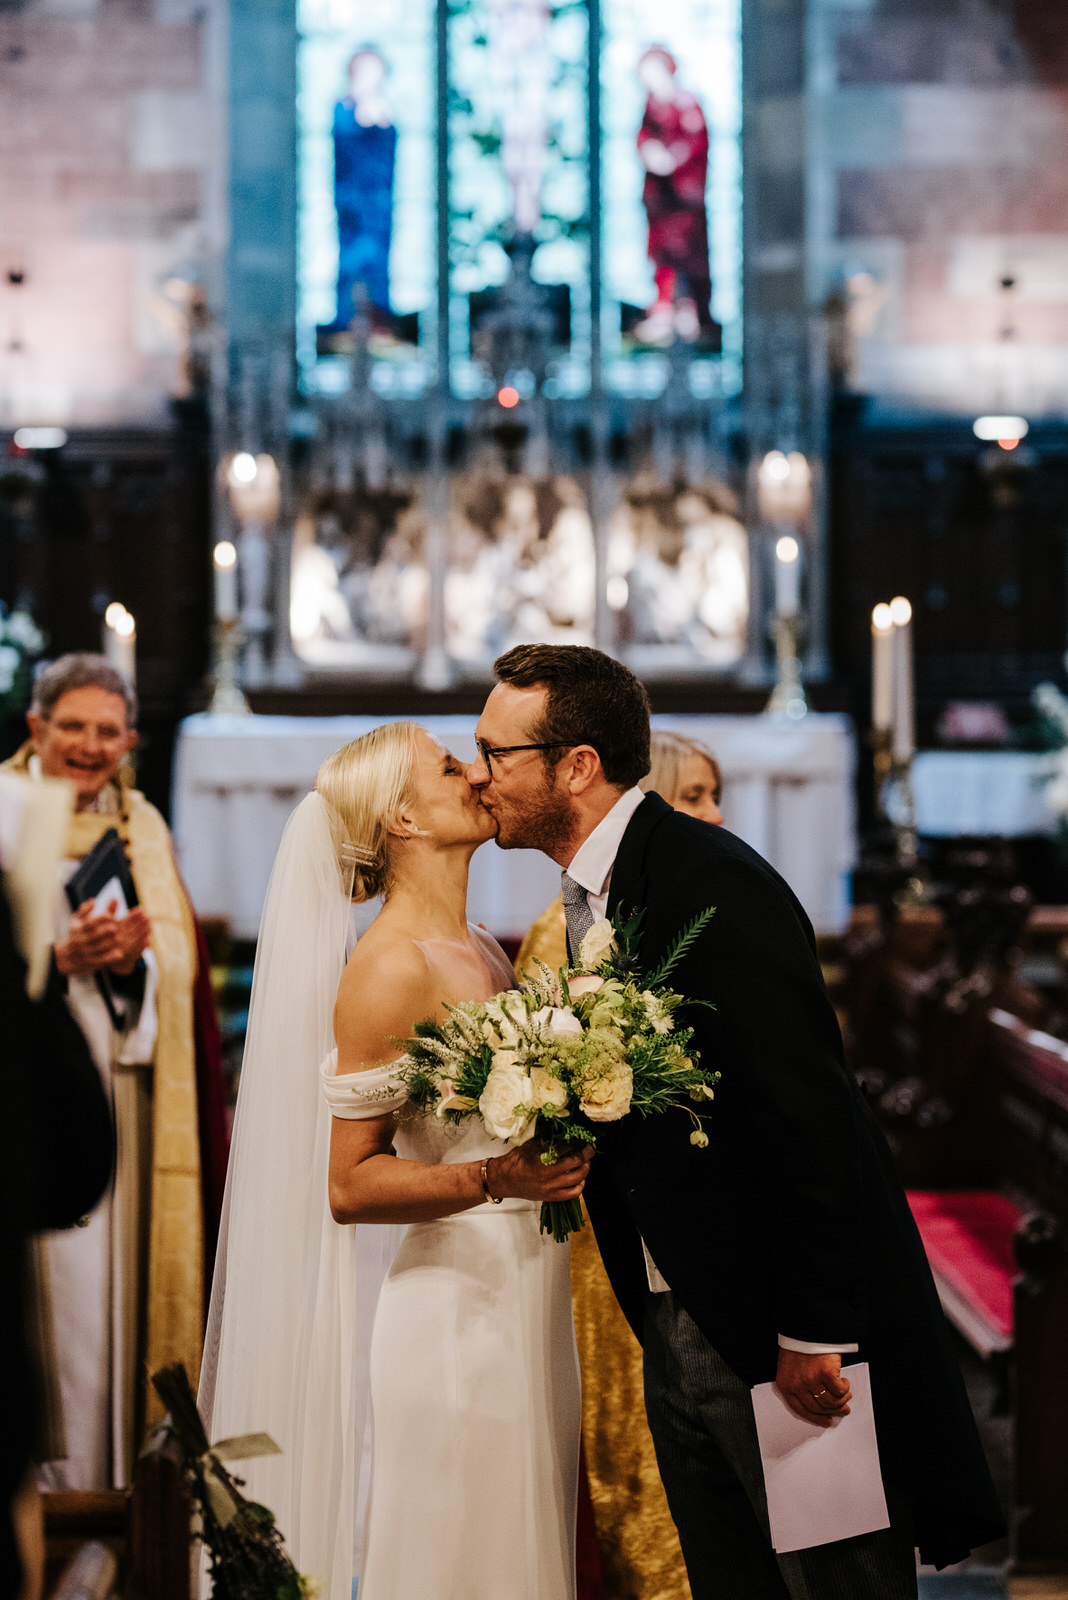 Bride and groom share first kiss before wedding ceremony ends